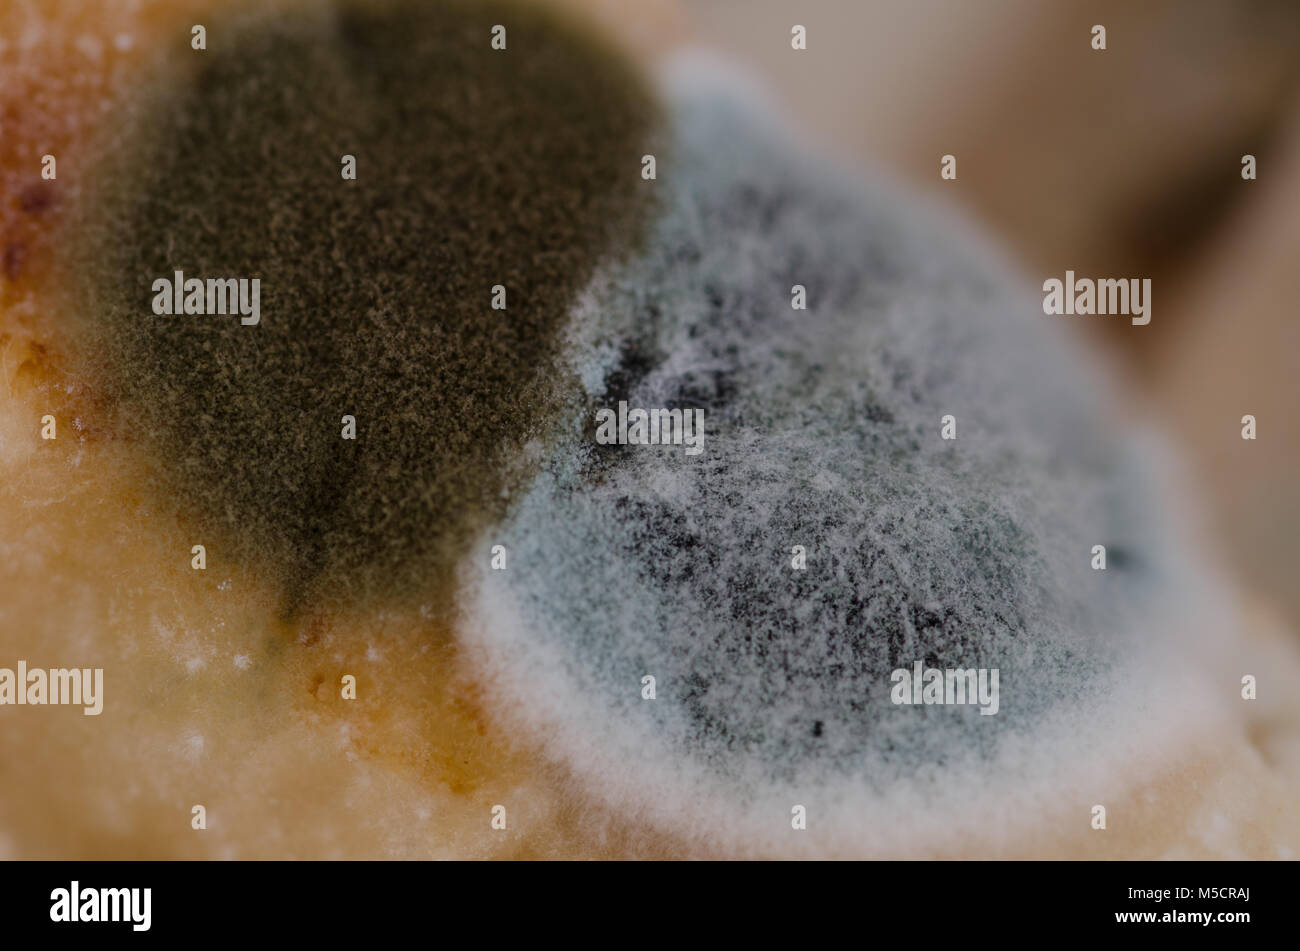 Close up, macro photography of mold on moldy food - Stock Image